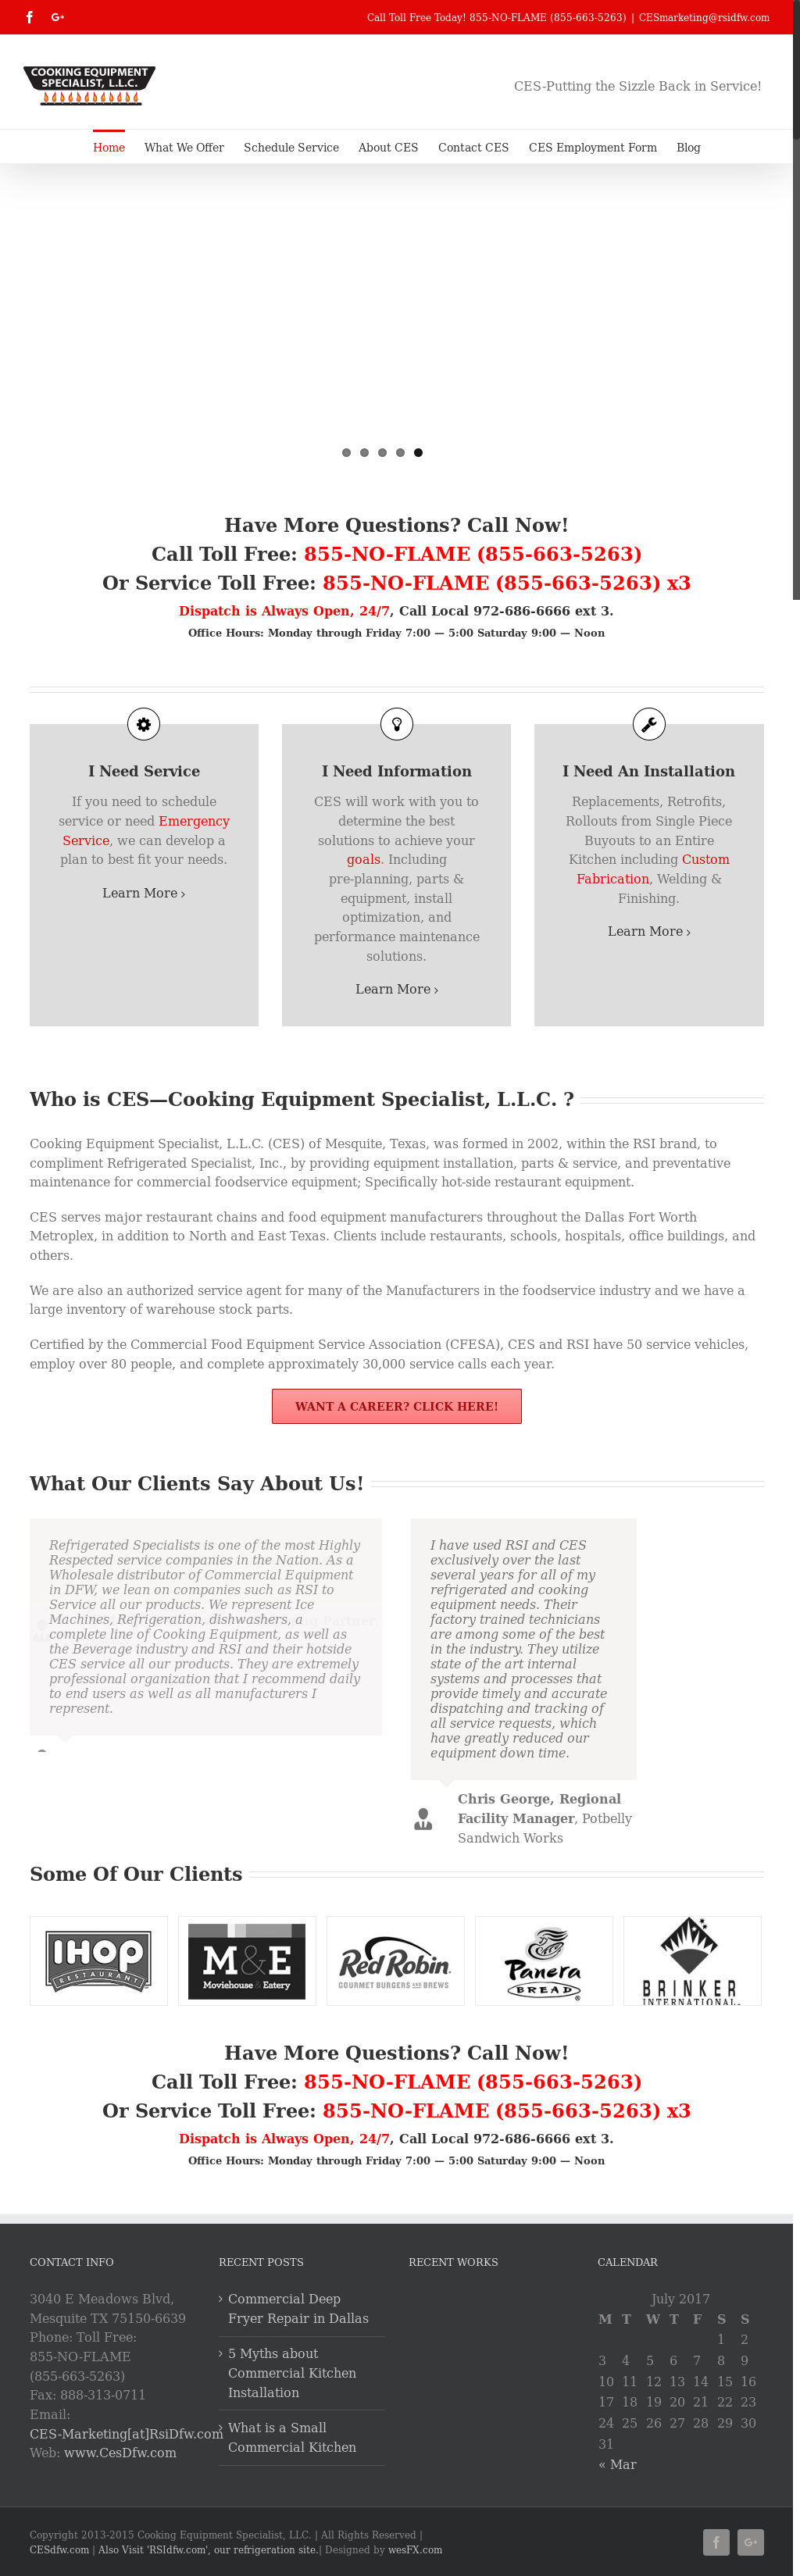 Ces Cooking Equipment Specialist Competitors, Revenue and Employees ...